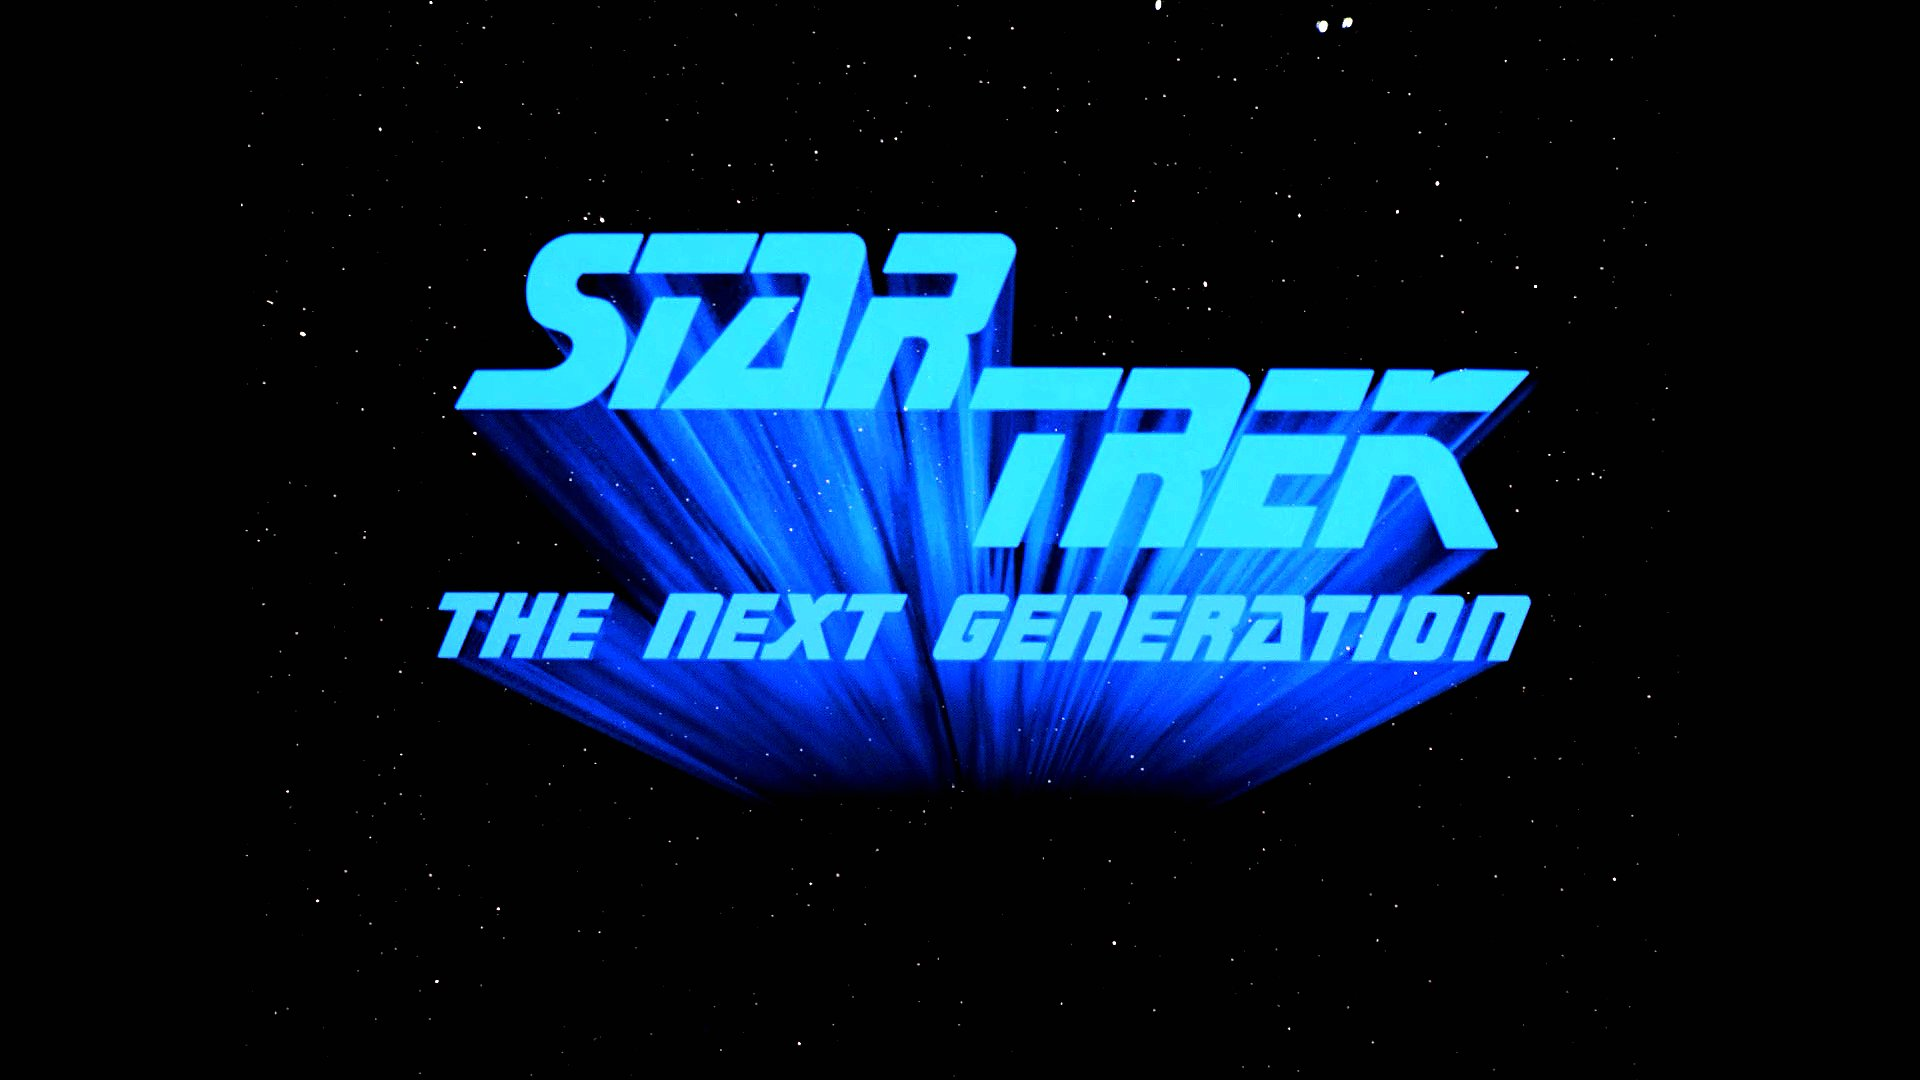 Next Generation Star Trek Sci Fi Adventure Action Television